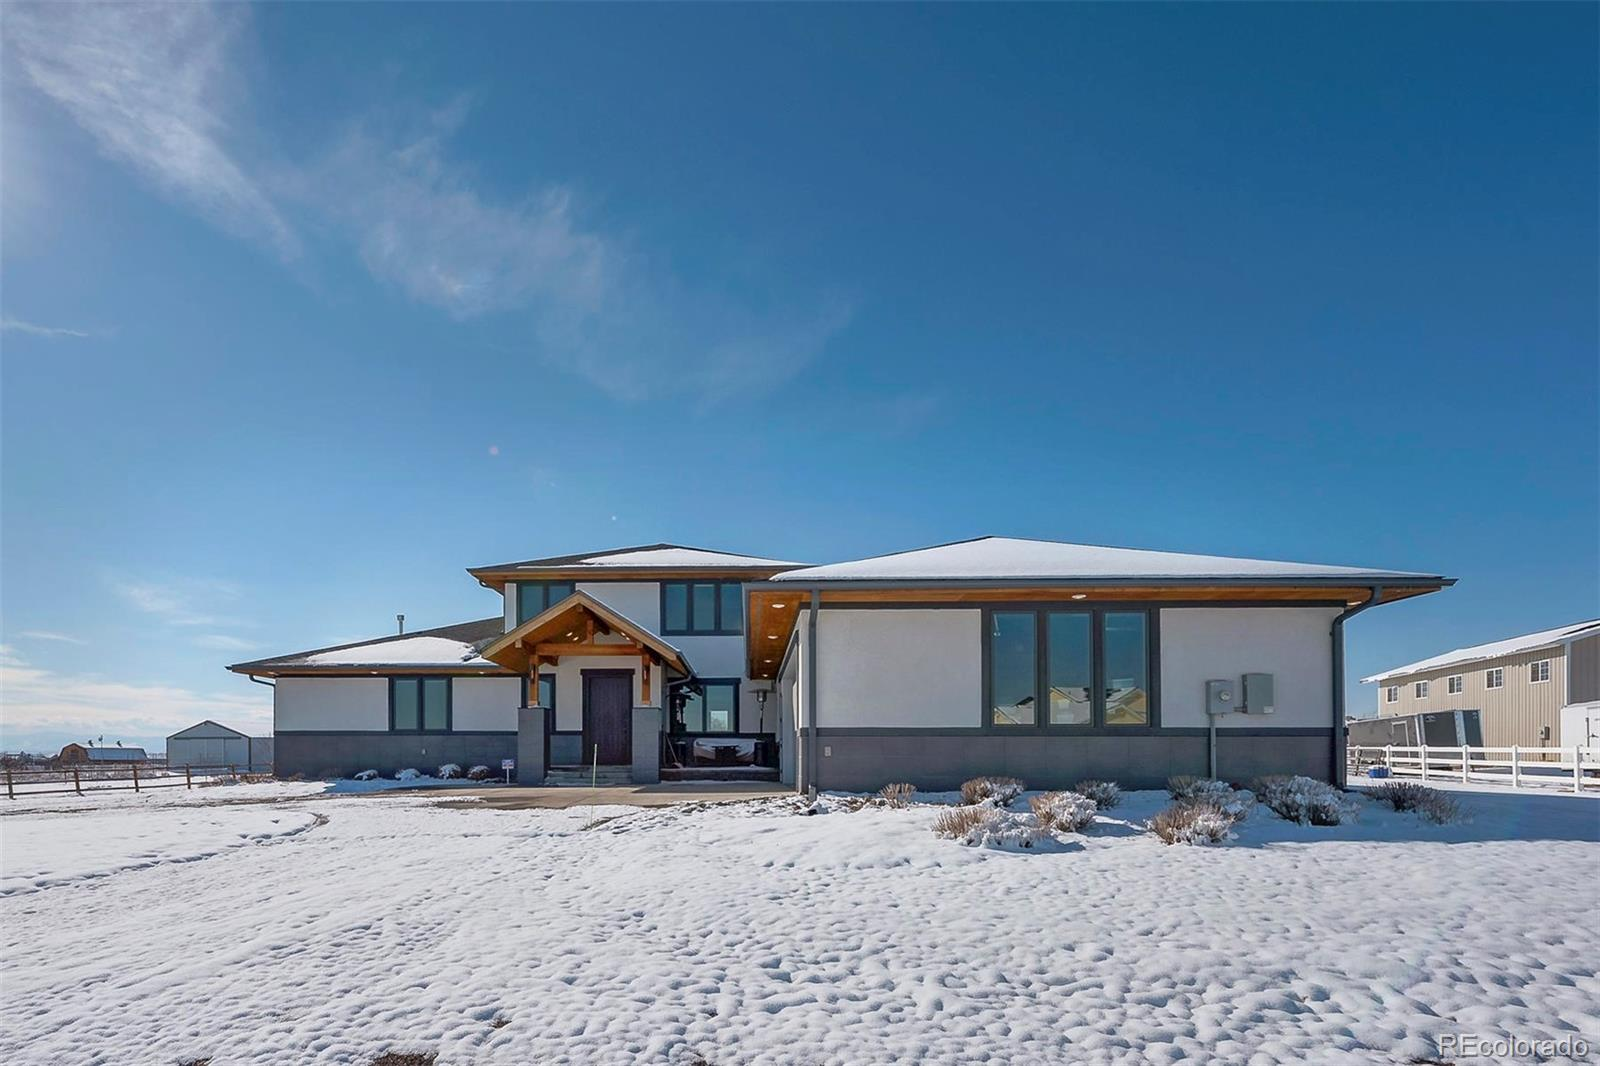 **OPEN HOUSE Saturday 2/8 12PM to 2PM**  This is a must see custom built home with no detail missed.  This home has an amazing open layout, huge kitchen, main floor master, 3 car finished and heated garage,  and all upstairs bedrooms have their own on suit bathrooms and walk in closets.  Do you have horses or do you want some land for activities and privacy?  If so, this home and property is for you.  Home includes smart home features, a secure room for valuables, 6 foot tall crawl space for storage, separate furnace and AC for each floor and many more features that you must see to believe.